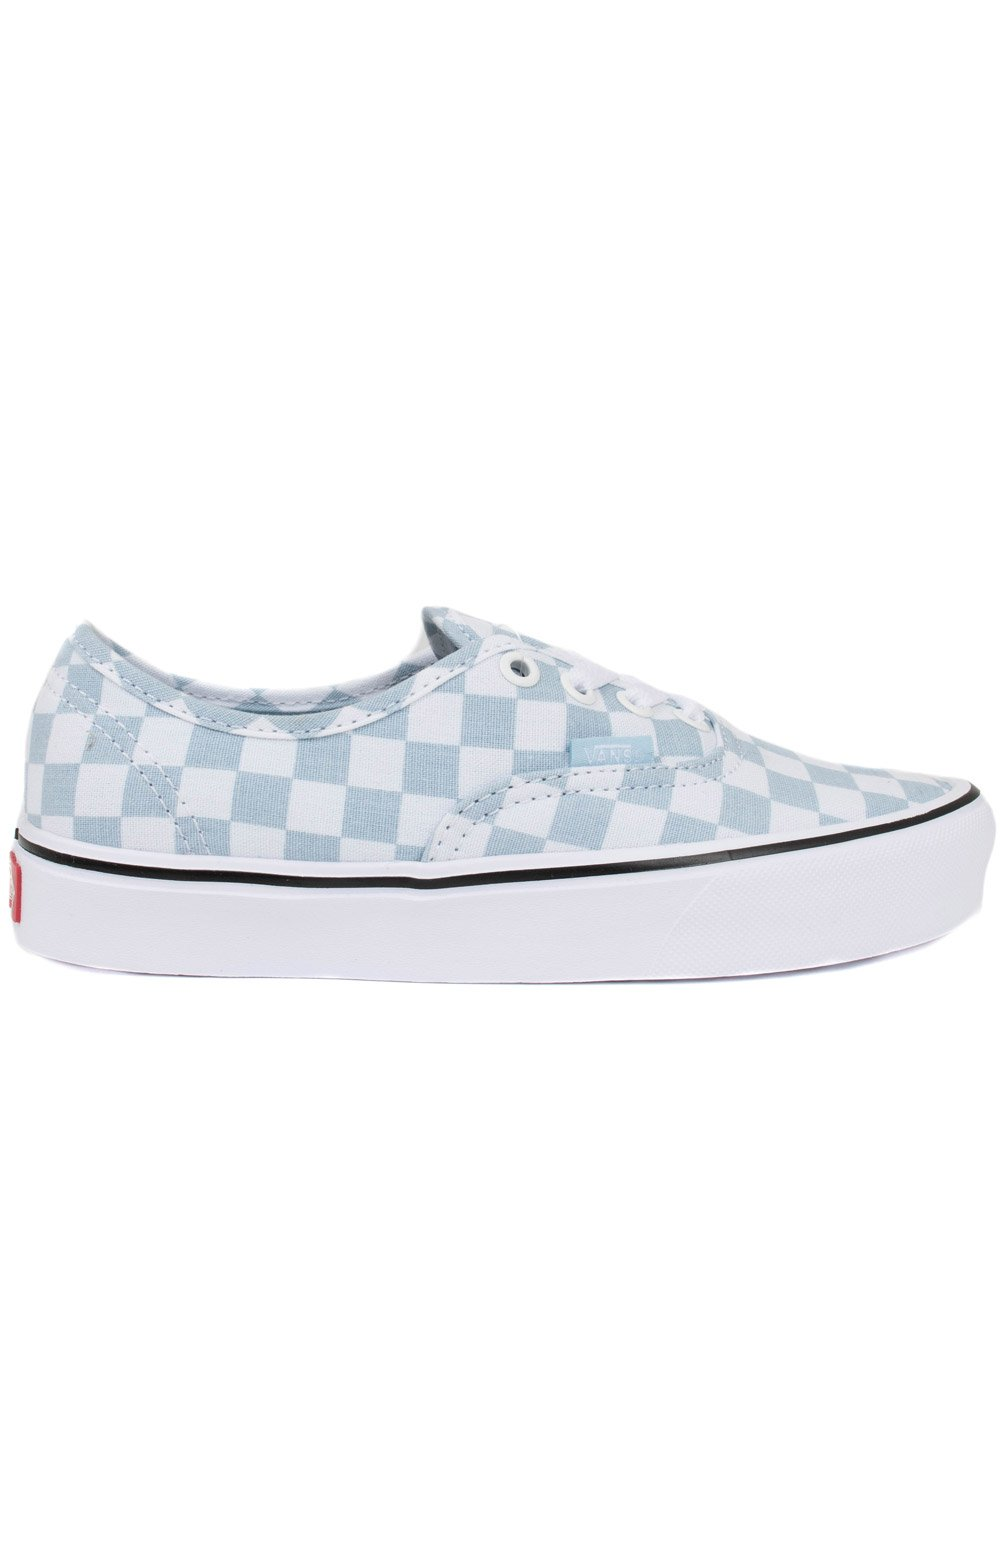 b9db3503bf ... Authentic Lite Shoe - Baby Blue Checker. Thumbnail 1 ...